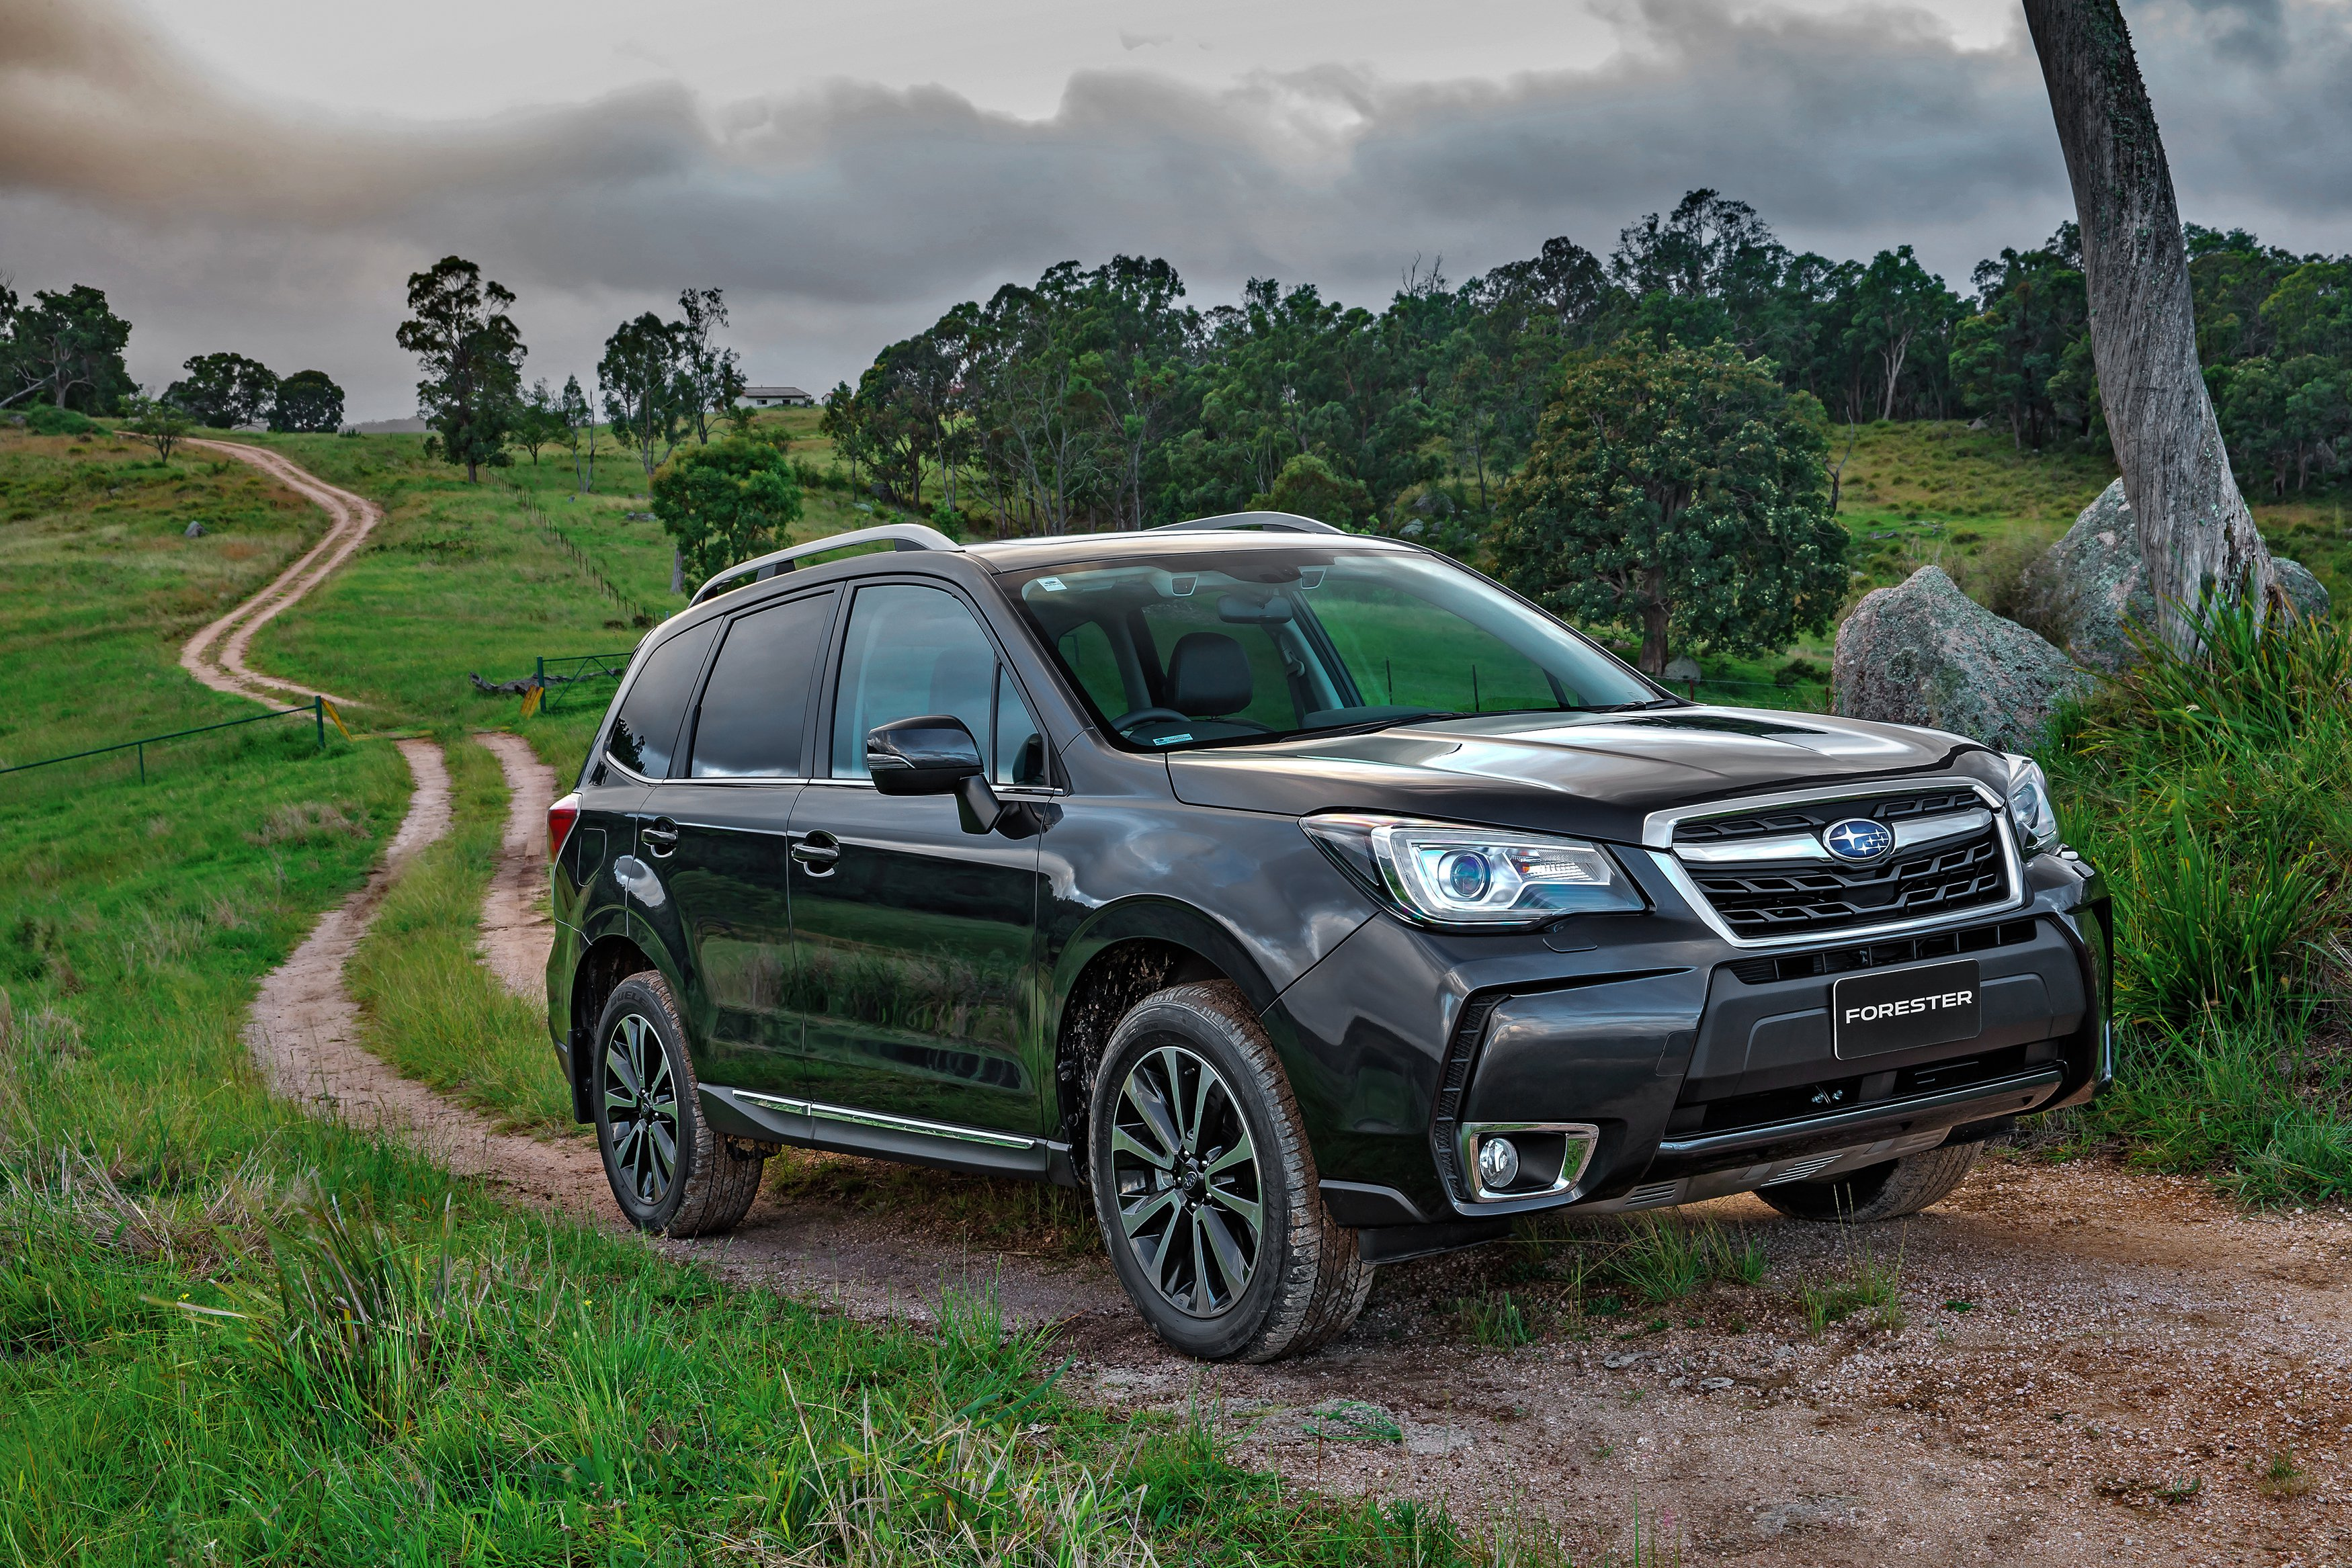 2018 Subaru Forester Pricing And Specs Same Looks More Kit Caradvice